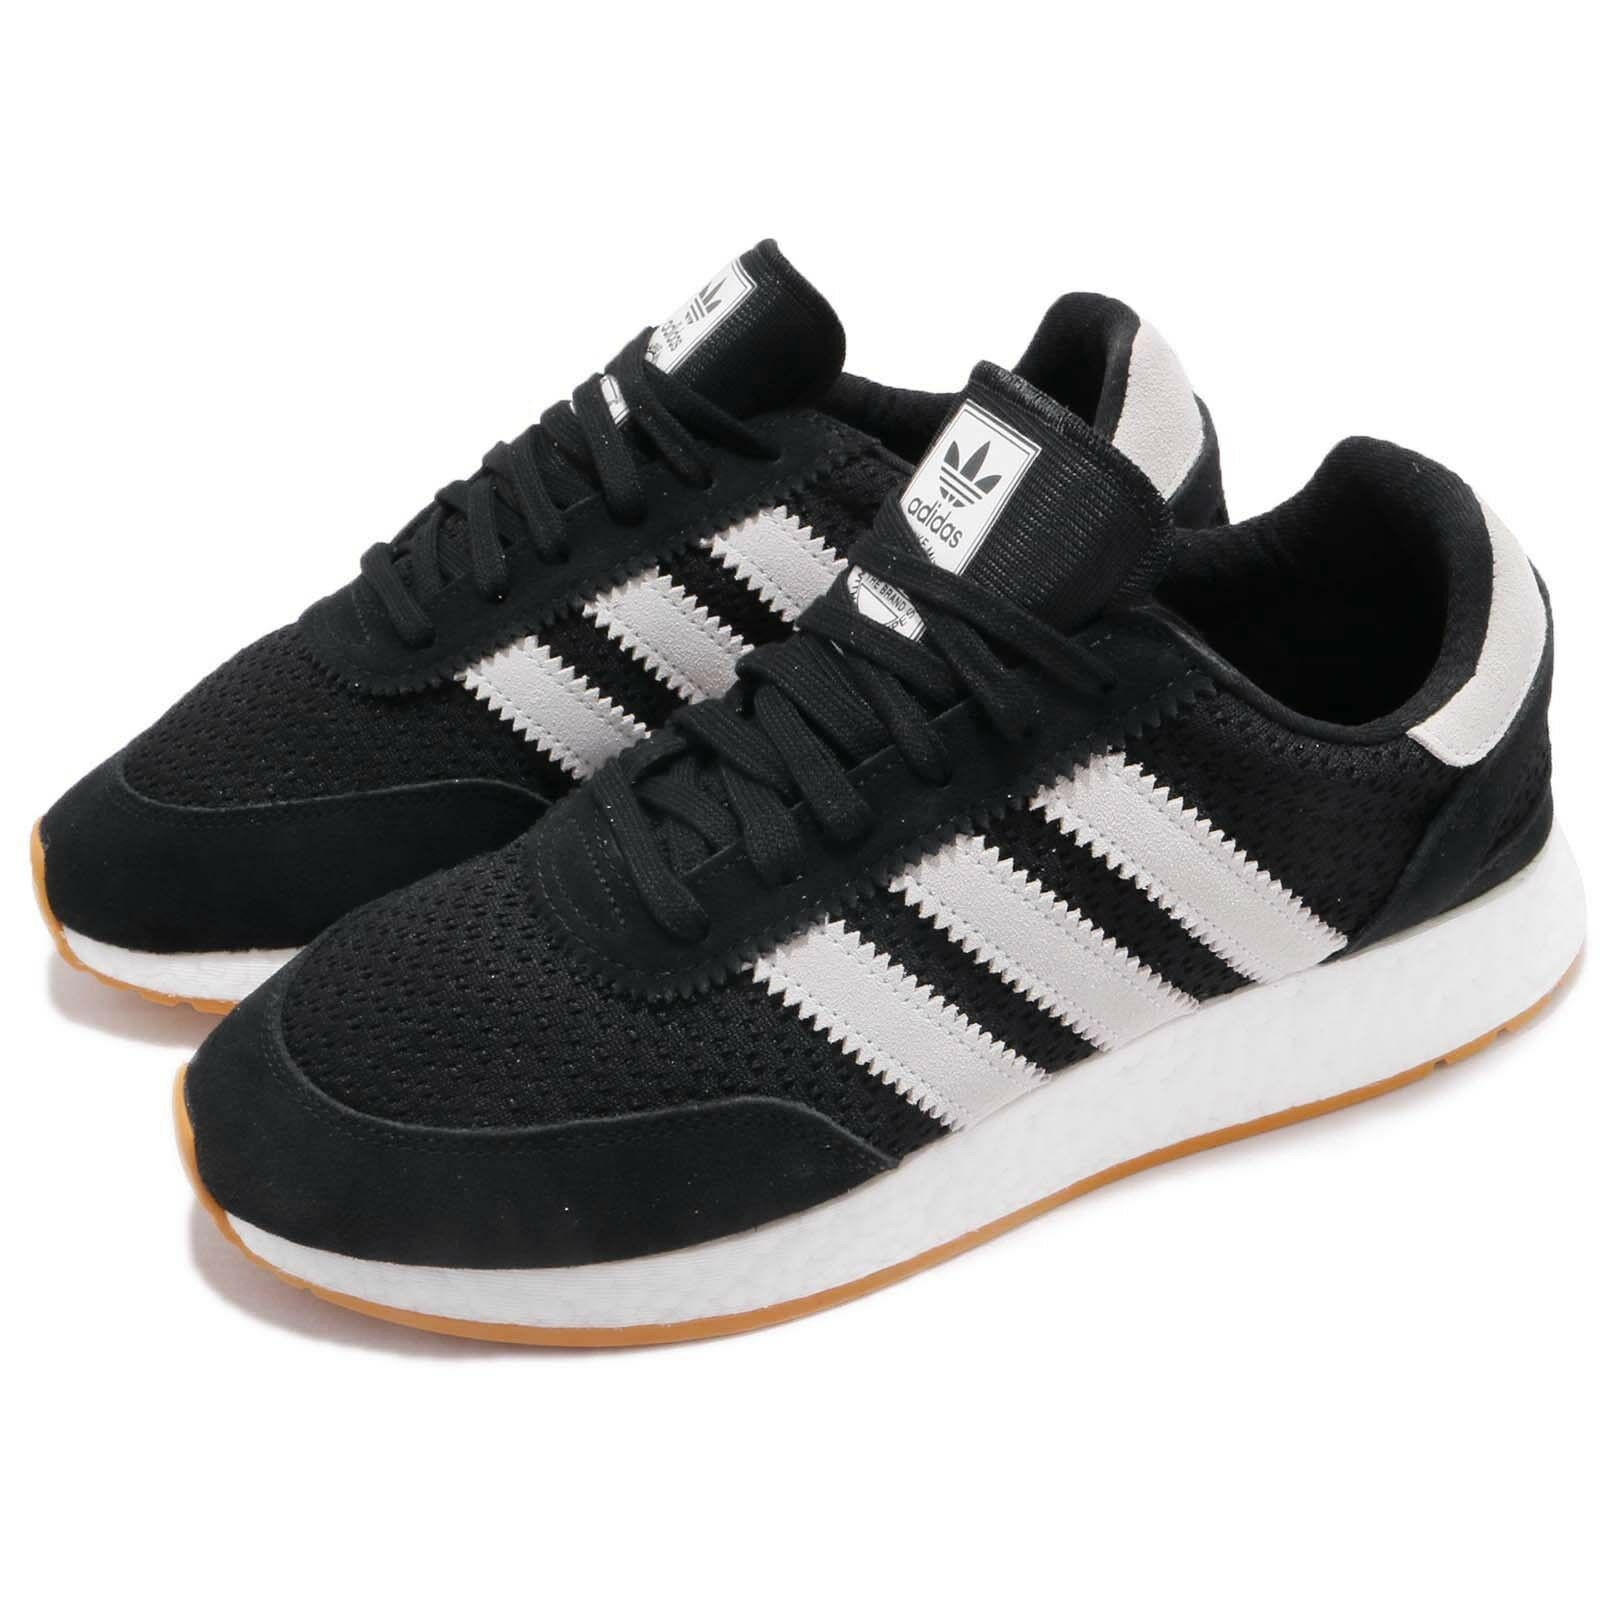 Adidas Originals Uomo I-5923 Iniki Runner BOOST Uomo Originals Running Shoes  Pick 1 9cebd8